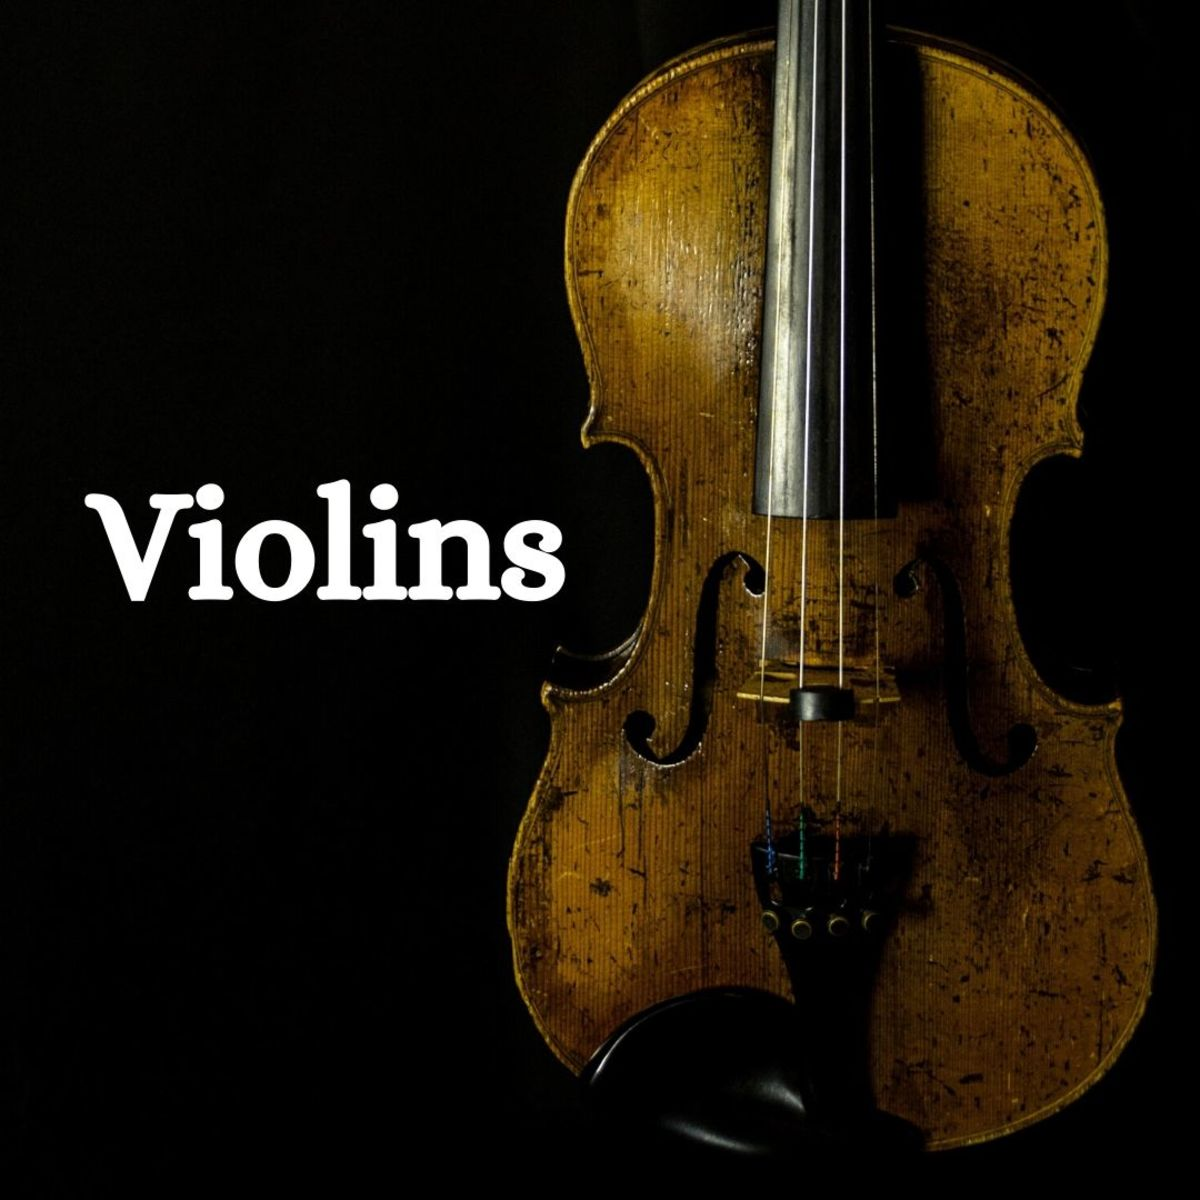 Collecting violins (especially old, valuable violins) can be extremely expensive, so don't even think about getting into collecting these unless you've got the cash!